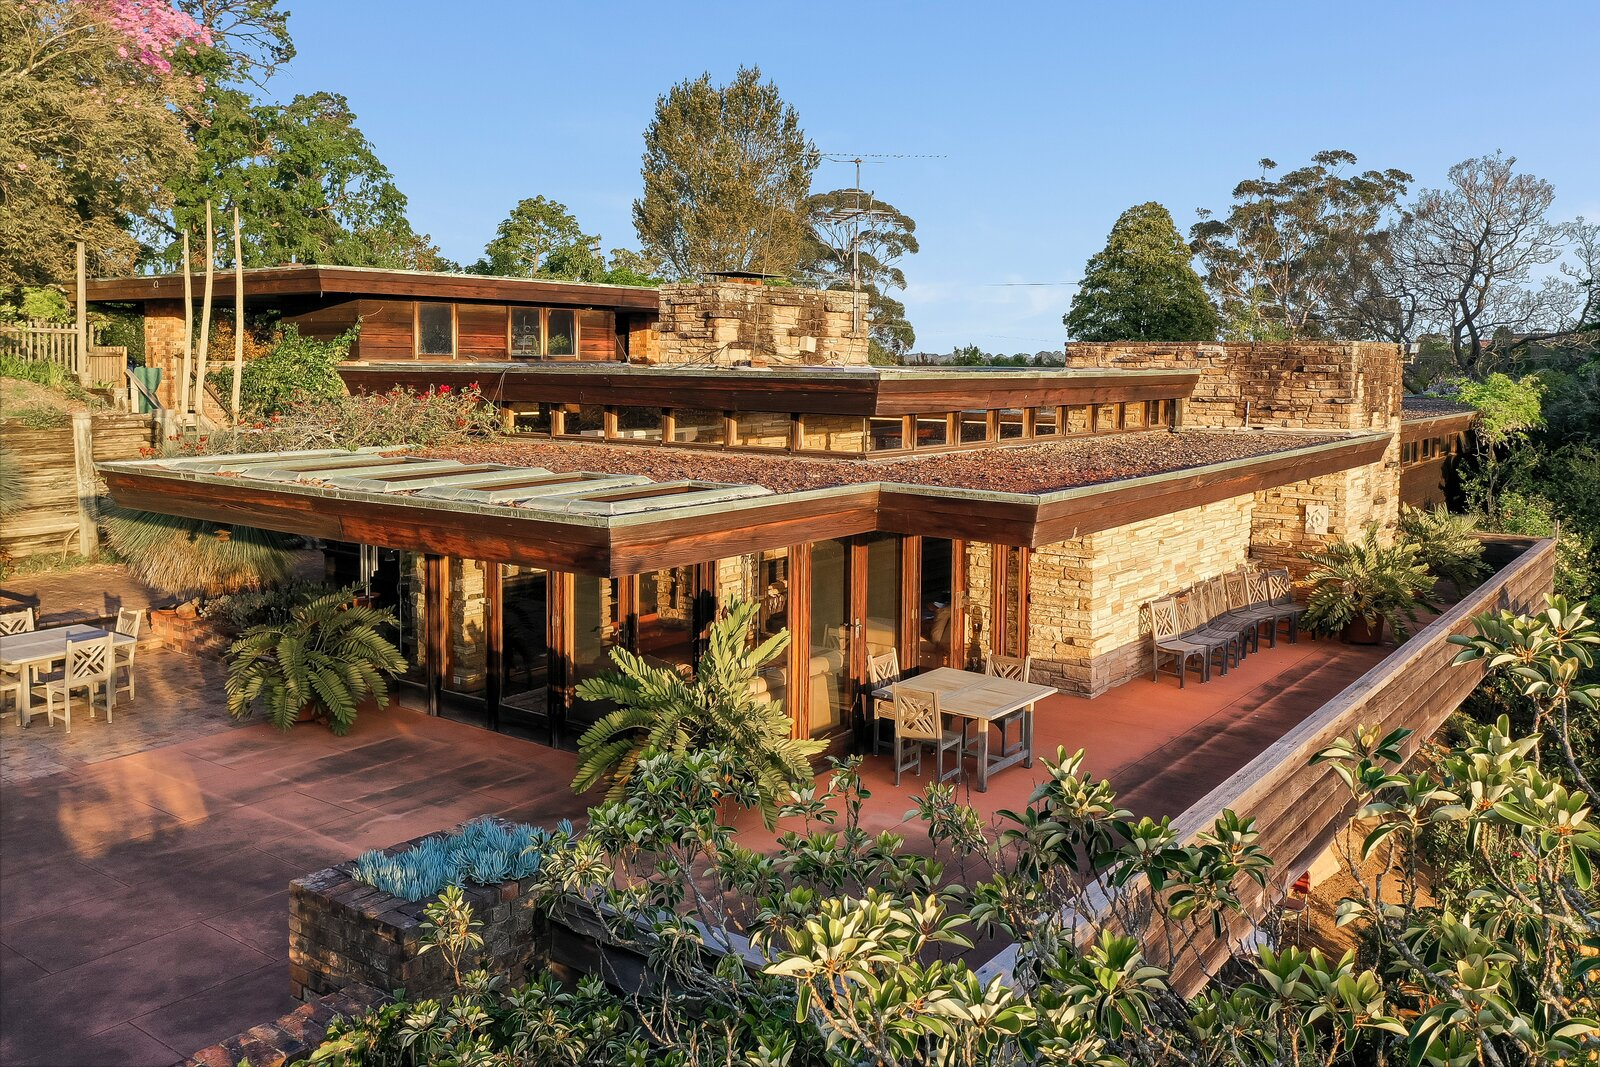 A large, cantilevered balcony wraps around the living area and provides ample outdoor space for entertaining, as well as sunset views over the five-acre plot and an adjacent town park.